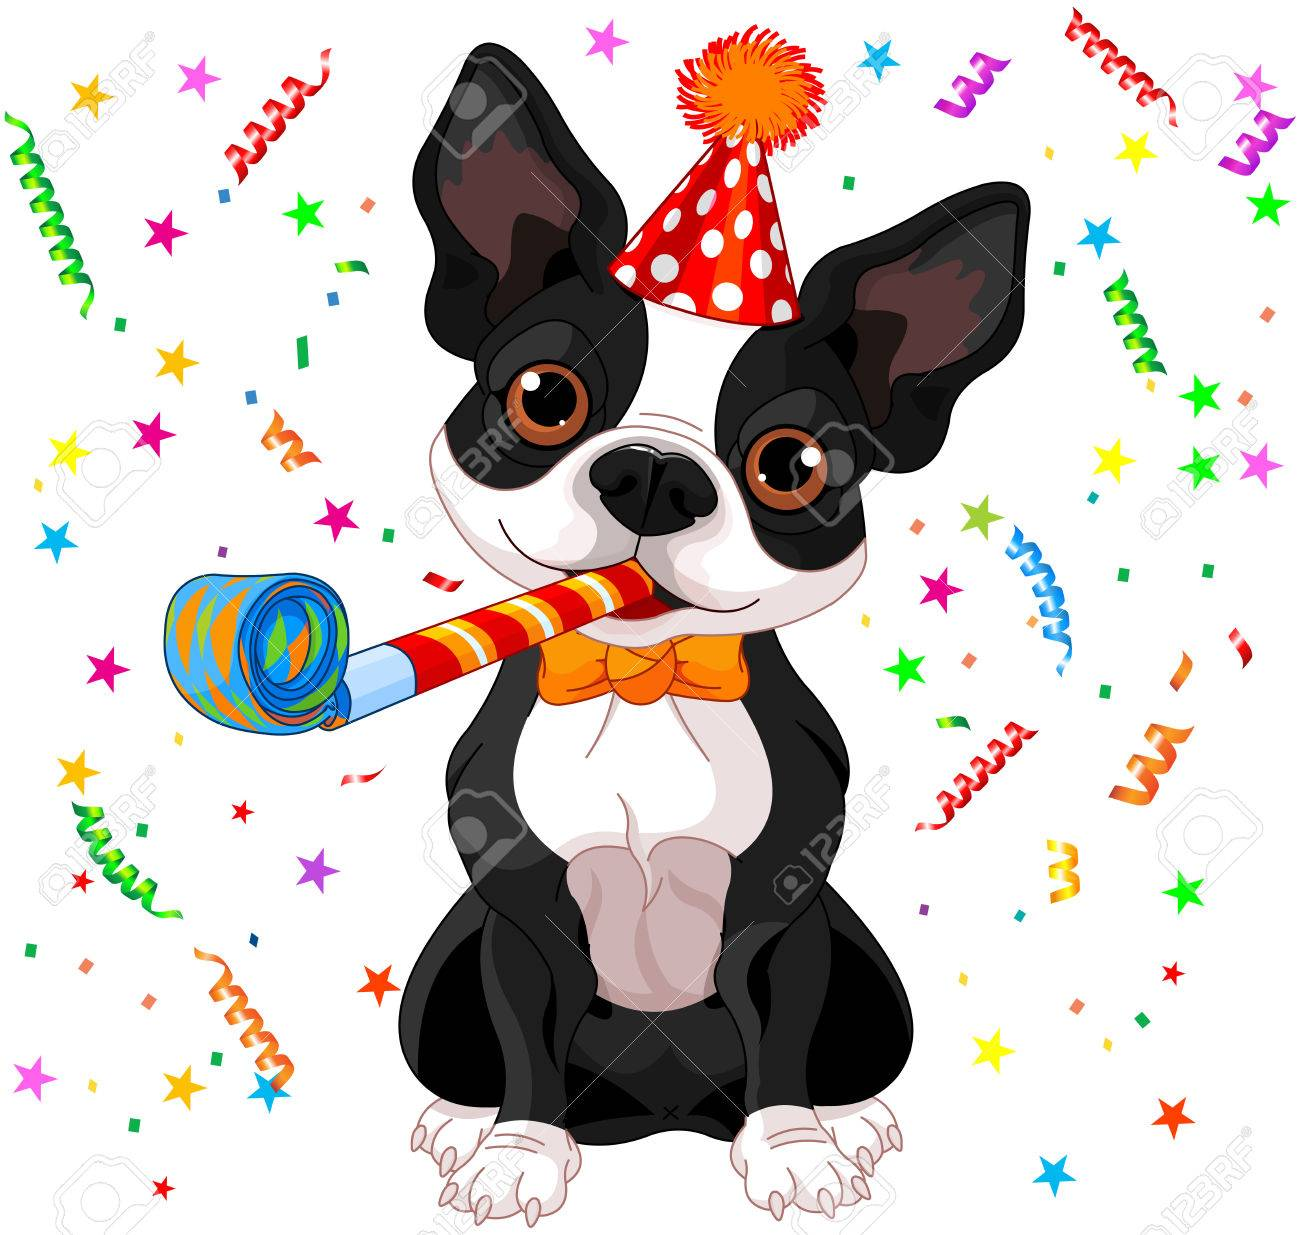 Carnet de bord d'Isis - Page 23 35588778-illustration-of-cute-boston-terrier-celebrating